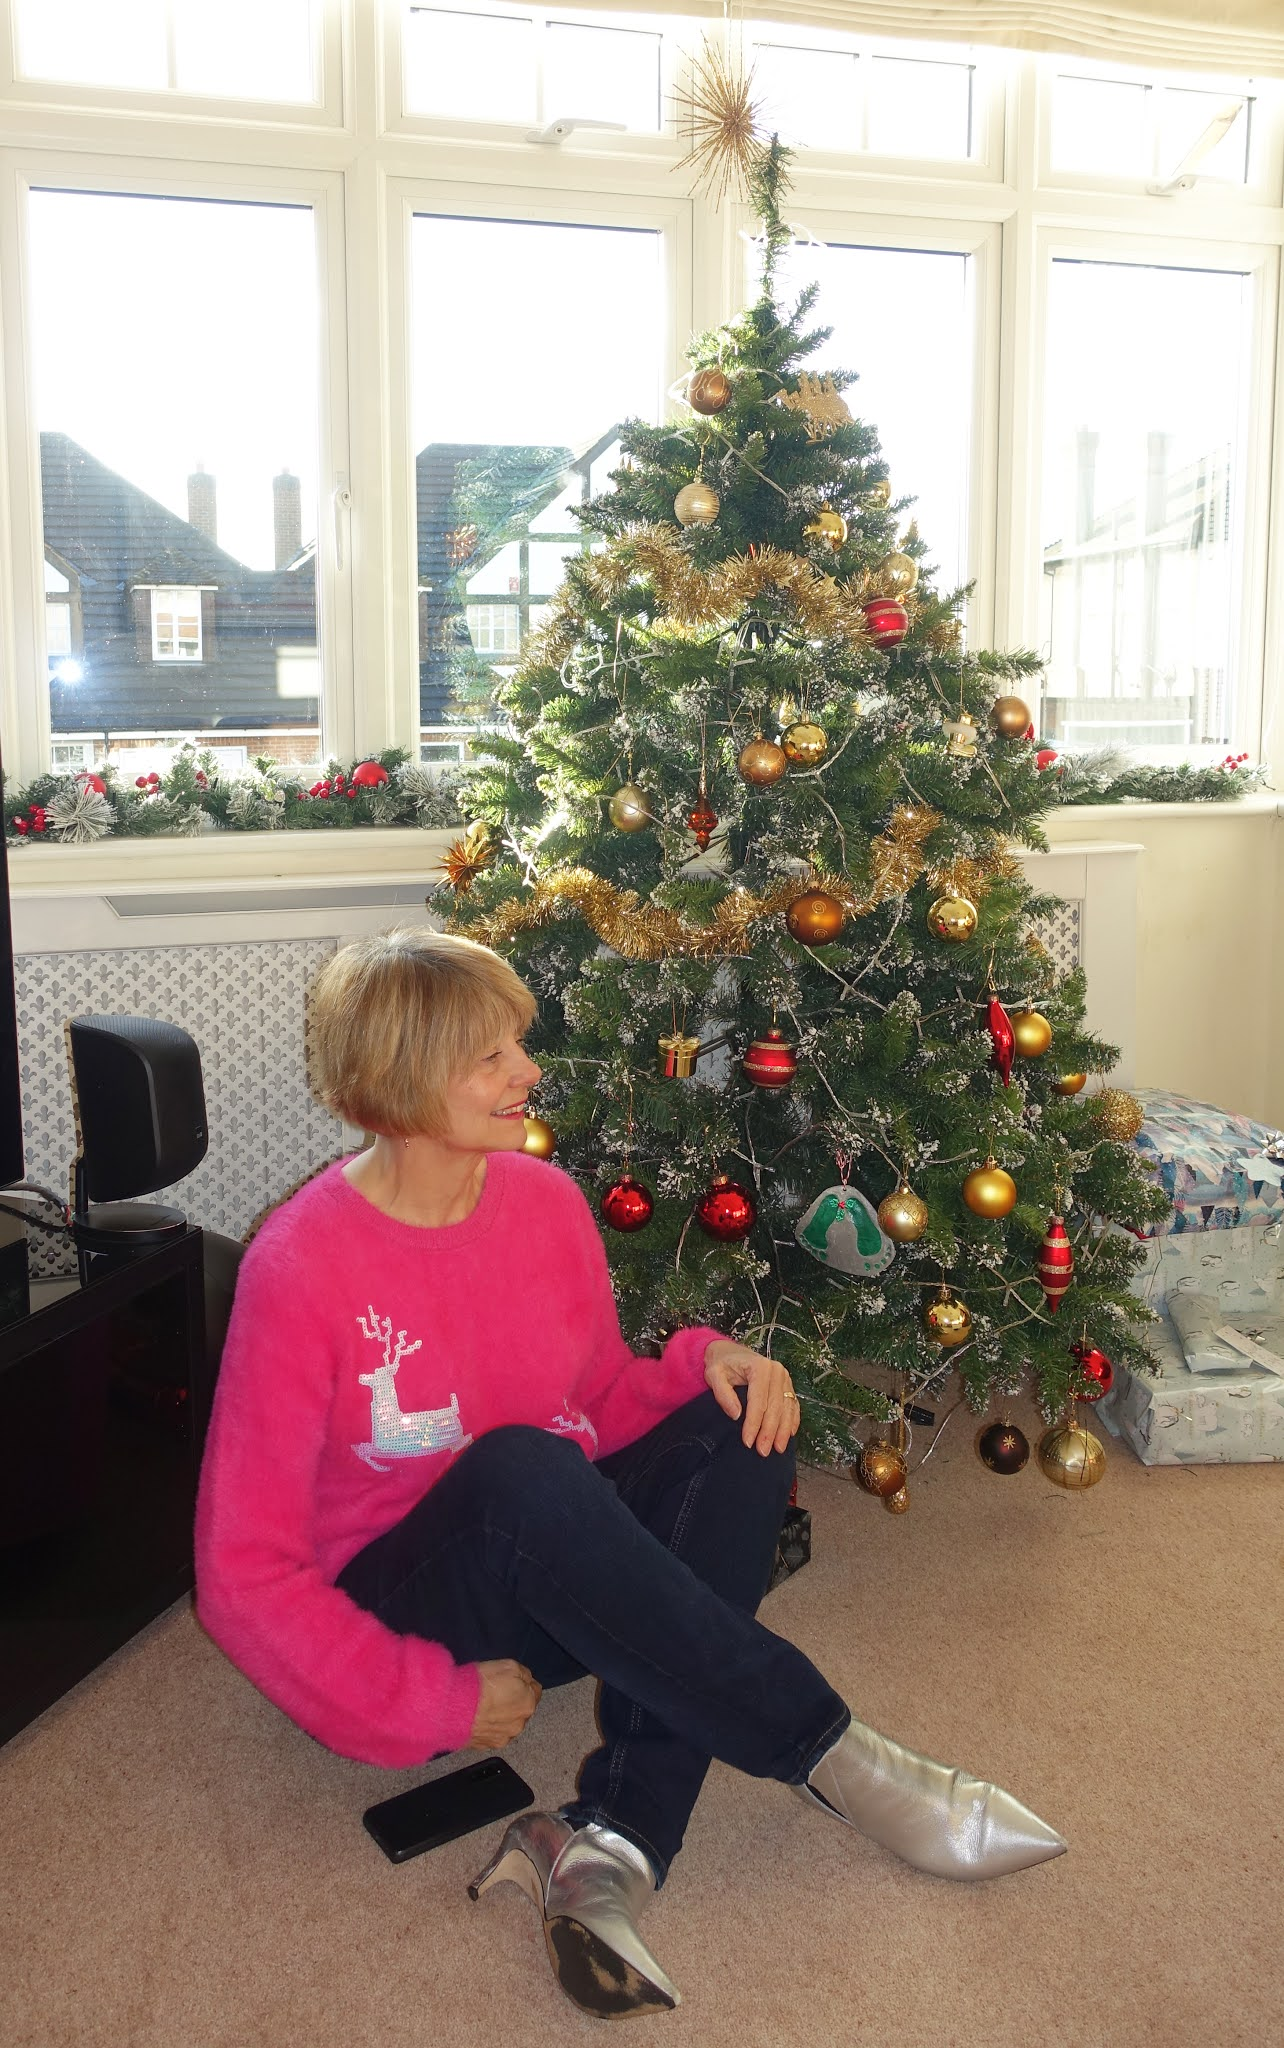 Seated vby the Christmas tree: Is This Mutton blogger Gail Hanlon in London, UK